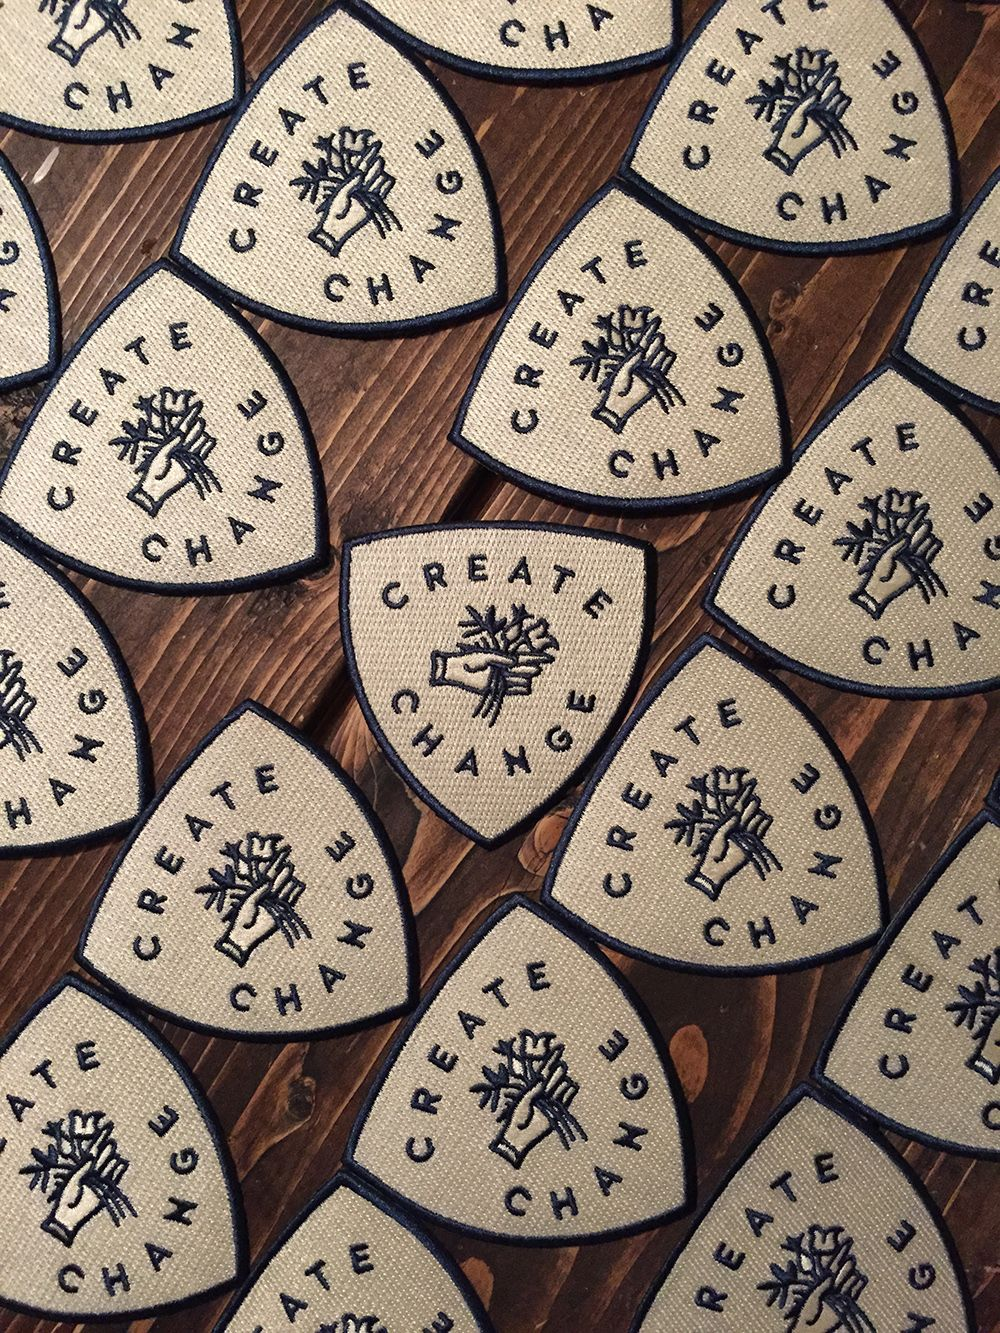 Create Change Iron On Patch Embroidered Patches Patches Iron On Patches